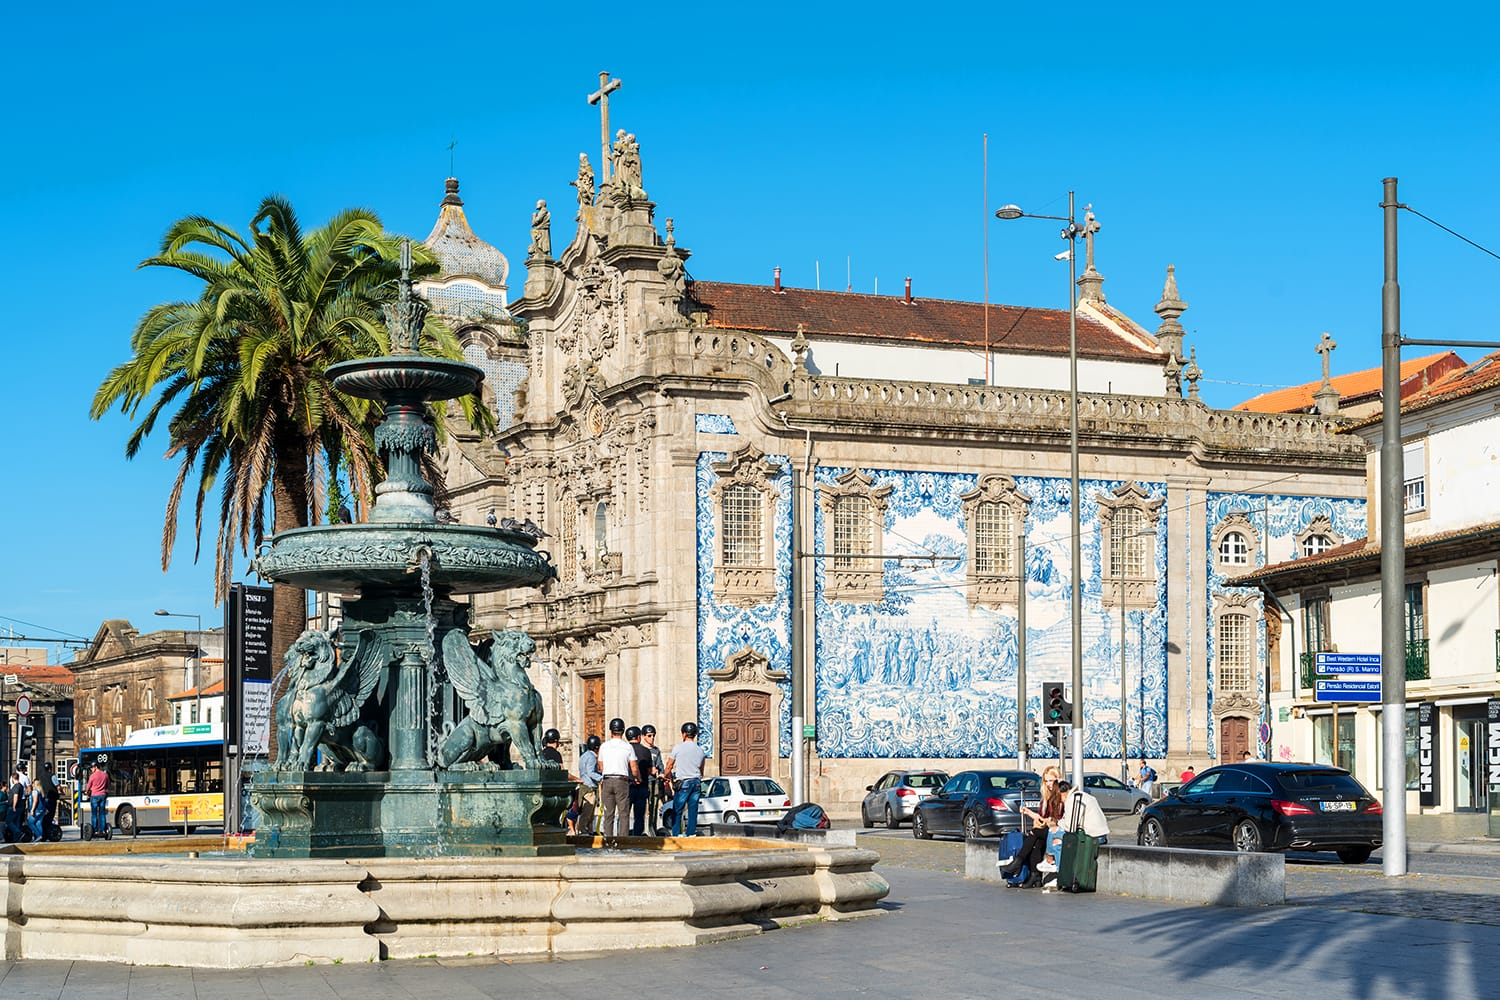 The Gomes Teixeira Square with the fountain of the lions and the Curch of Carmo in Porto, Portugal